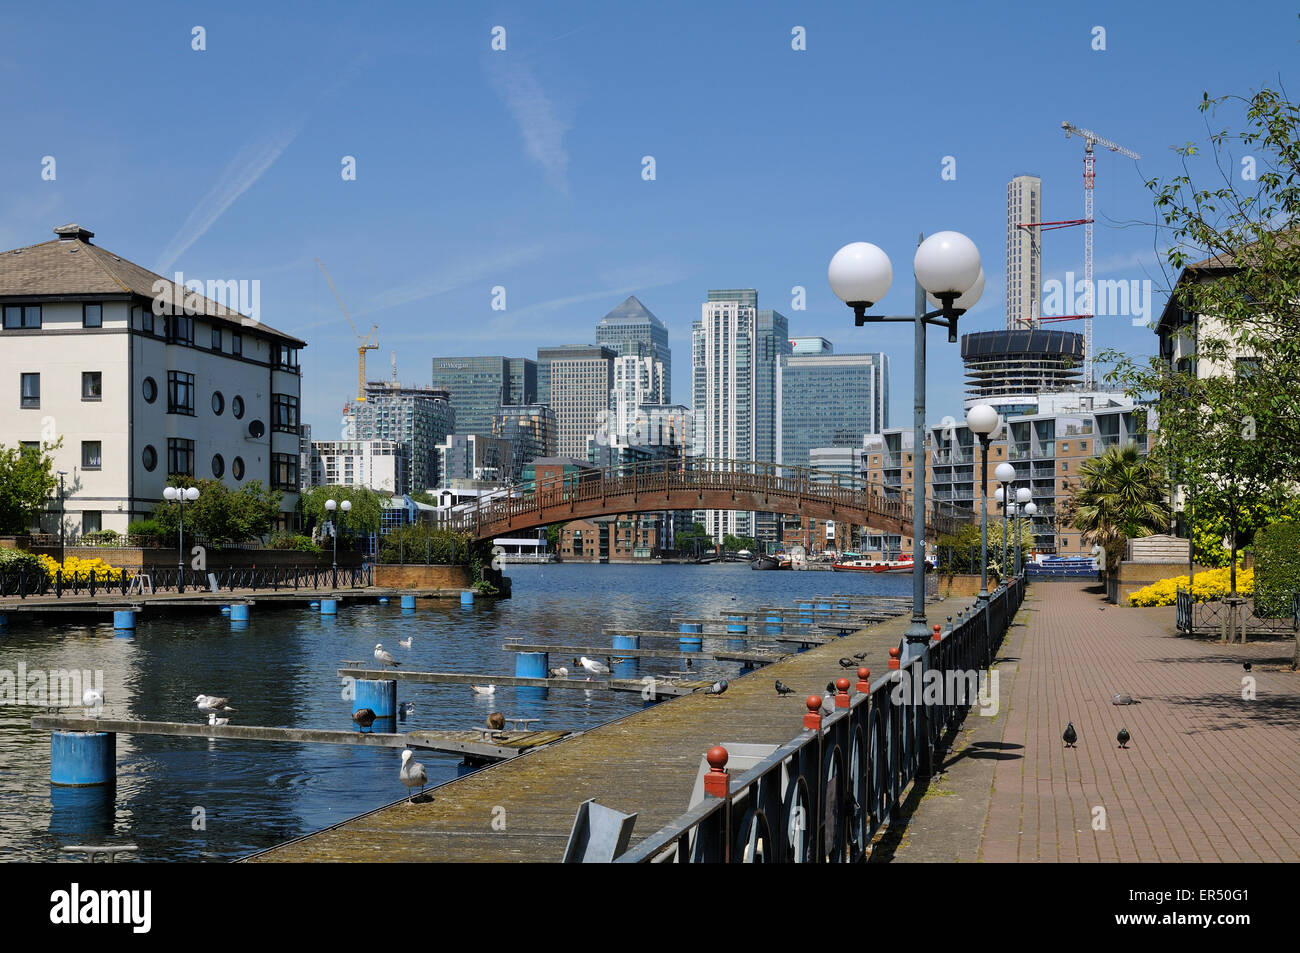 New homes at Millwall Outer Dock, Isle of Dogs, London UK, looking towards Canary Wharf - Stock Image